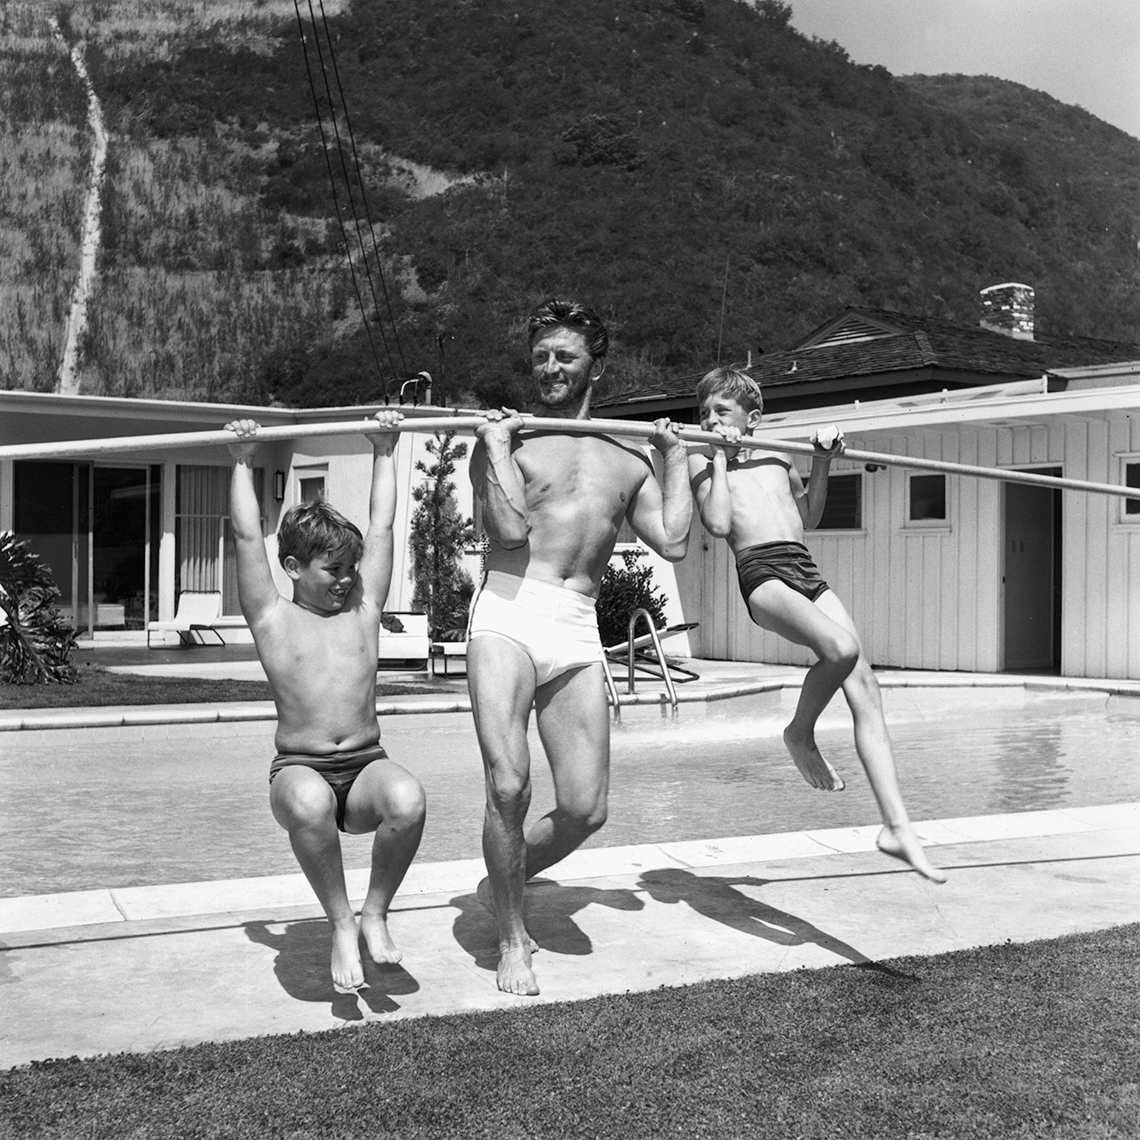 black and white photo from the fifties showing actor kirk douglas lifting his sons michael and joel up in his backyard using a pole